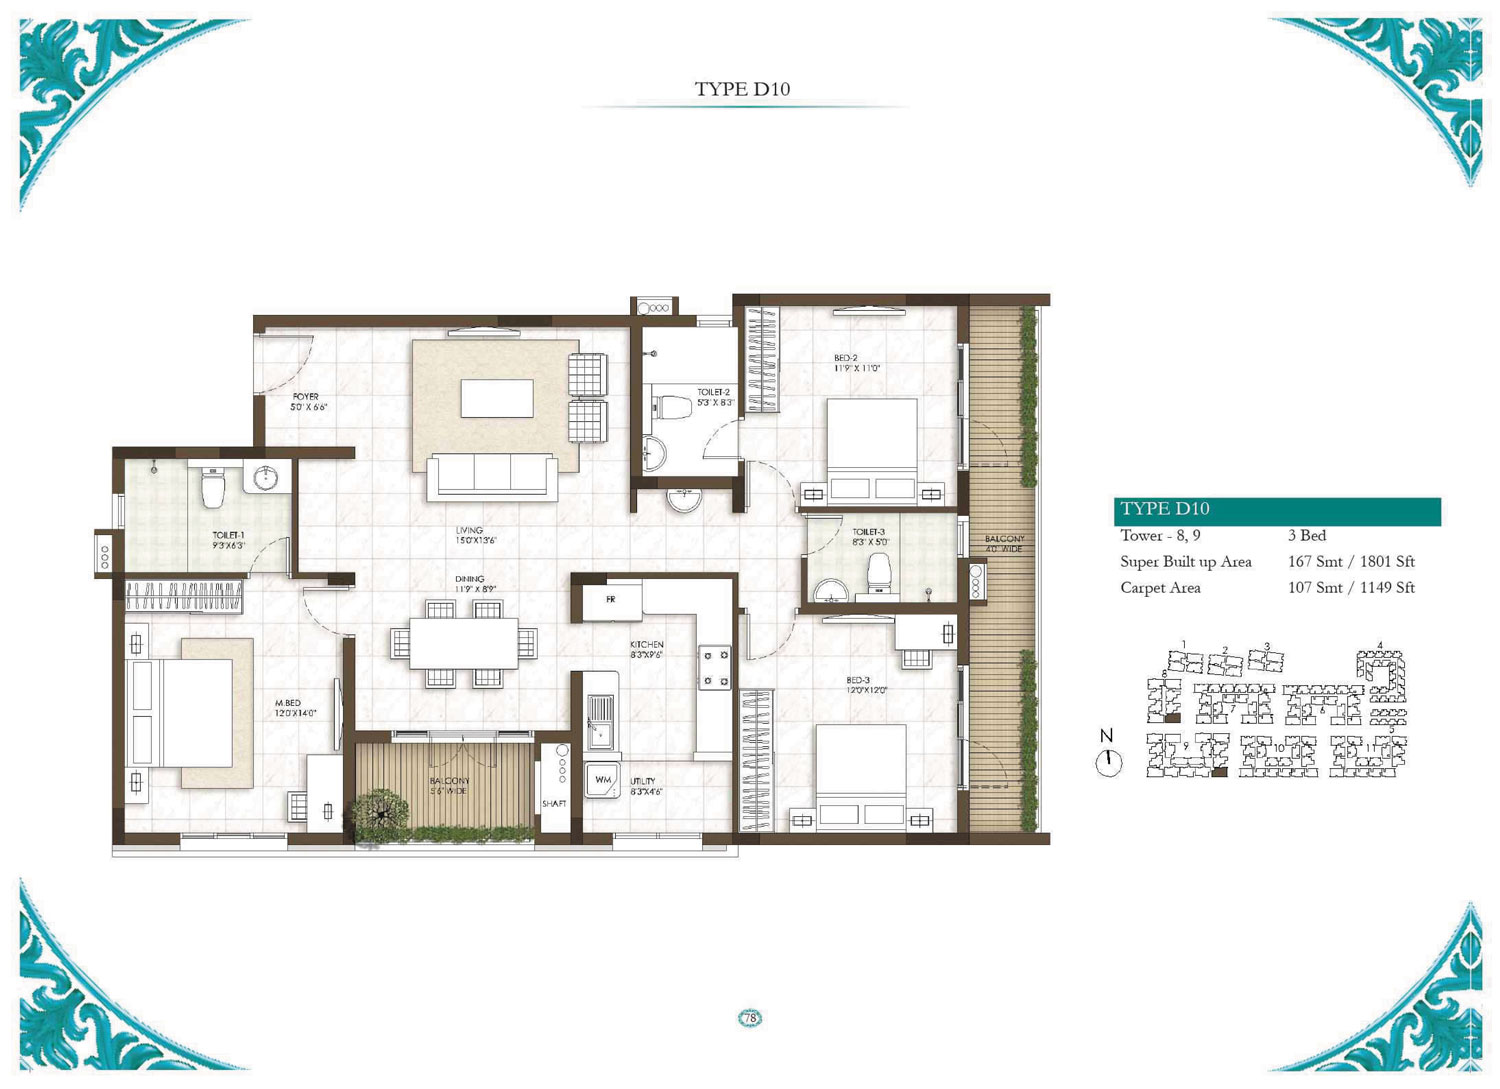 Type D10 - 3 Bed - 1801 Sq Ft